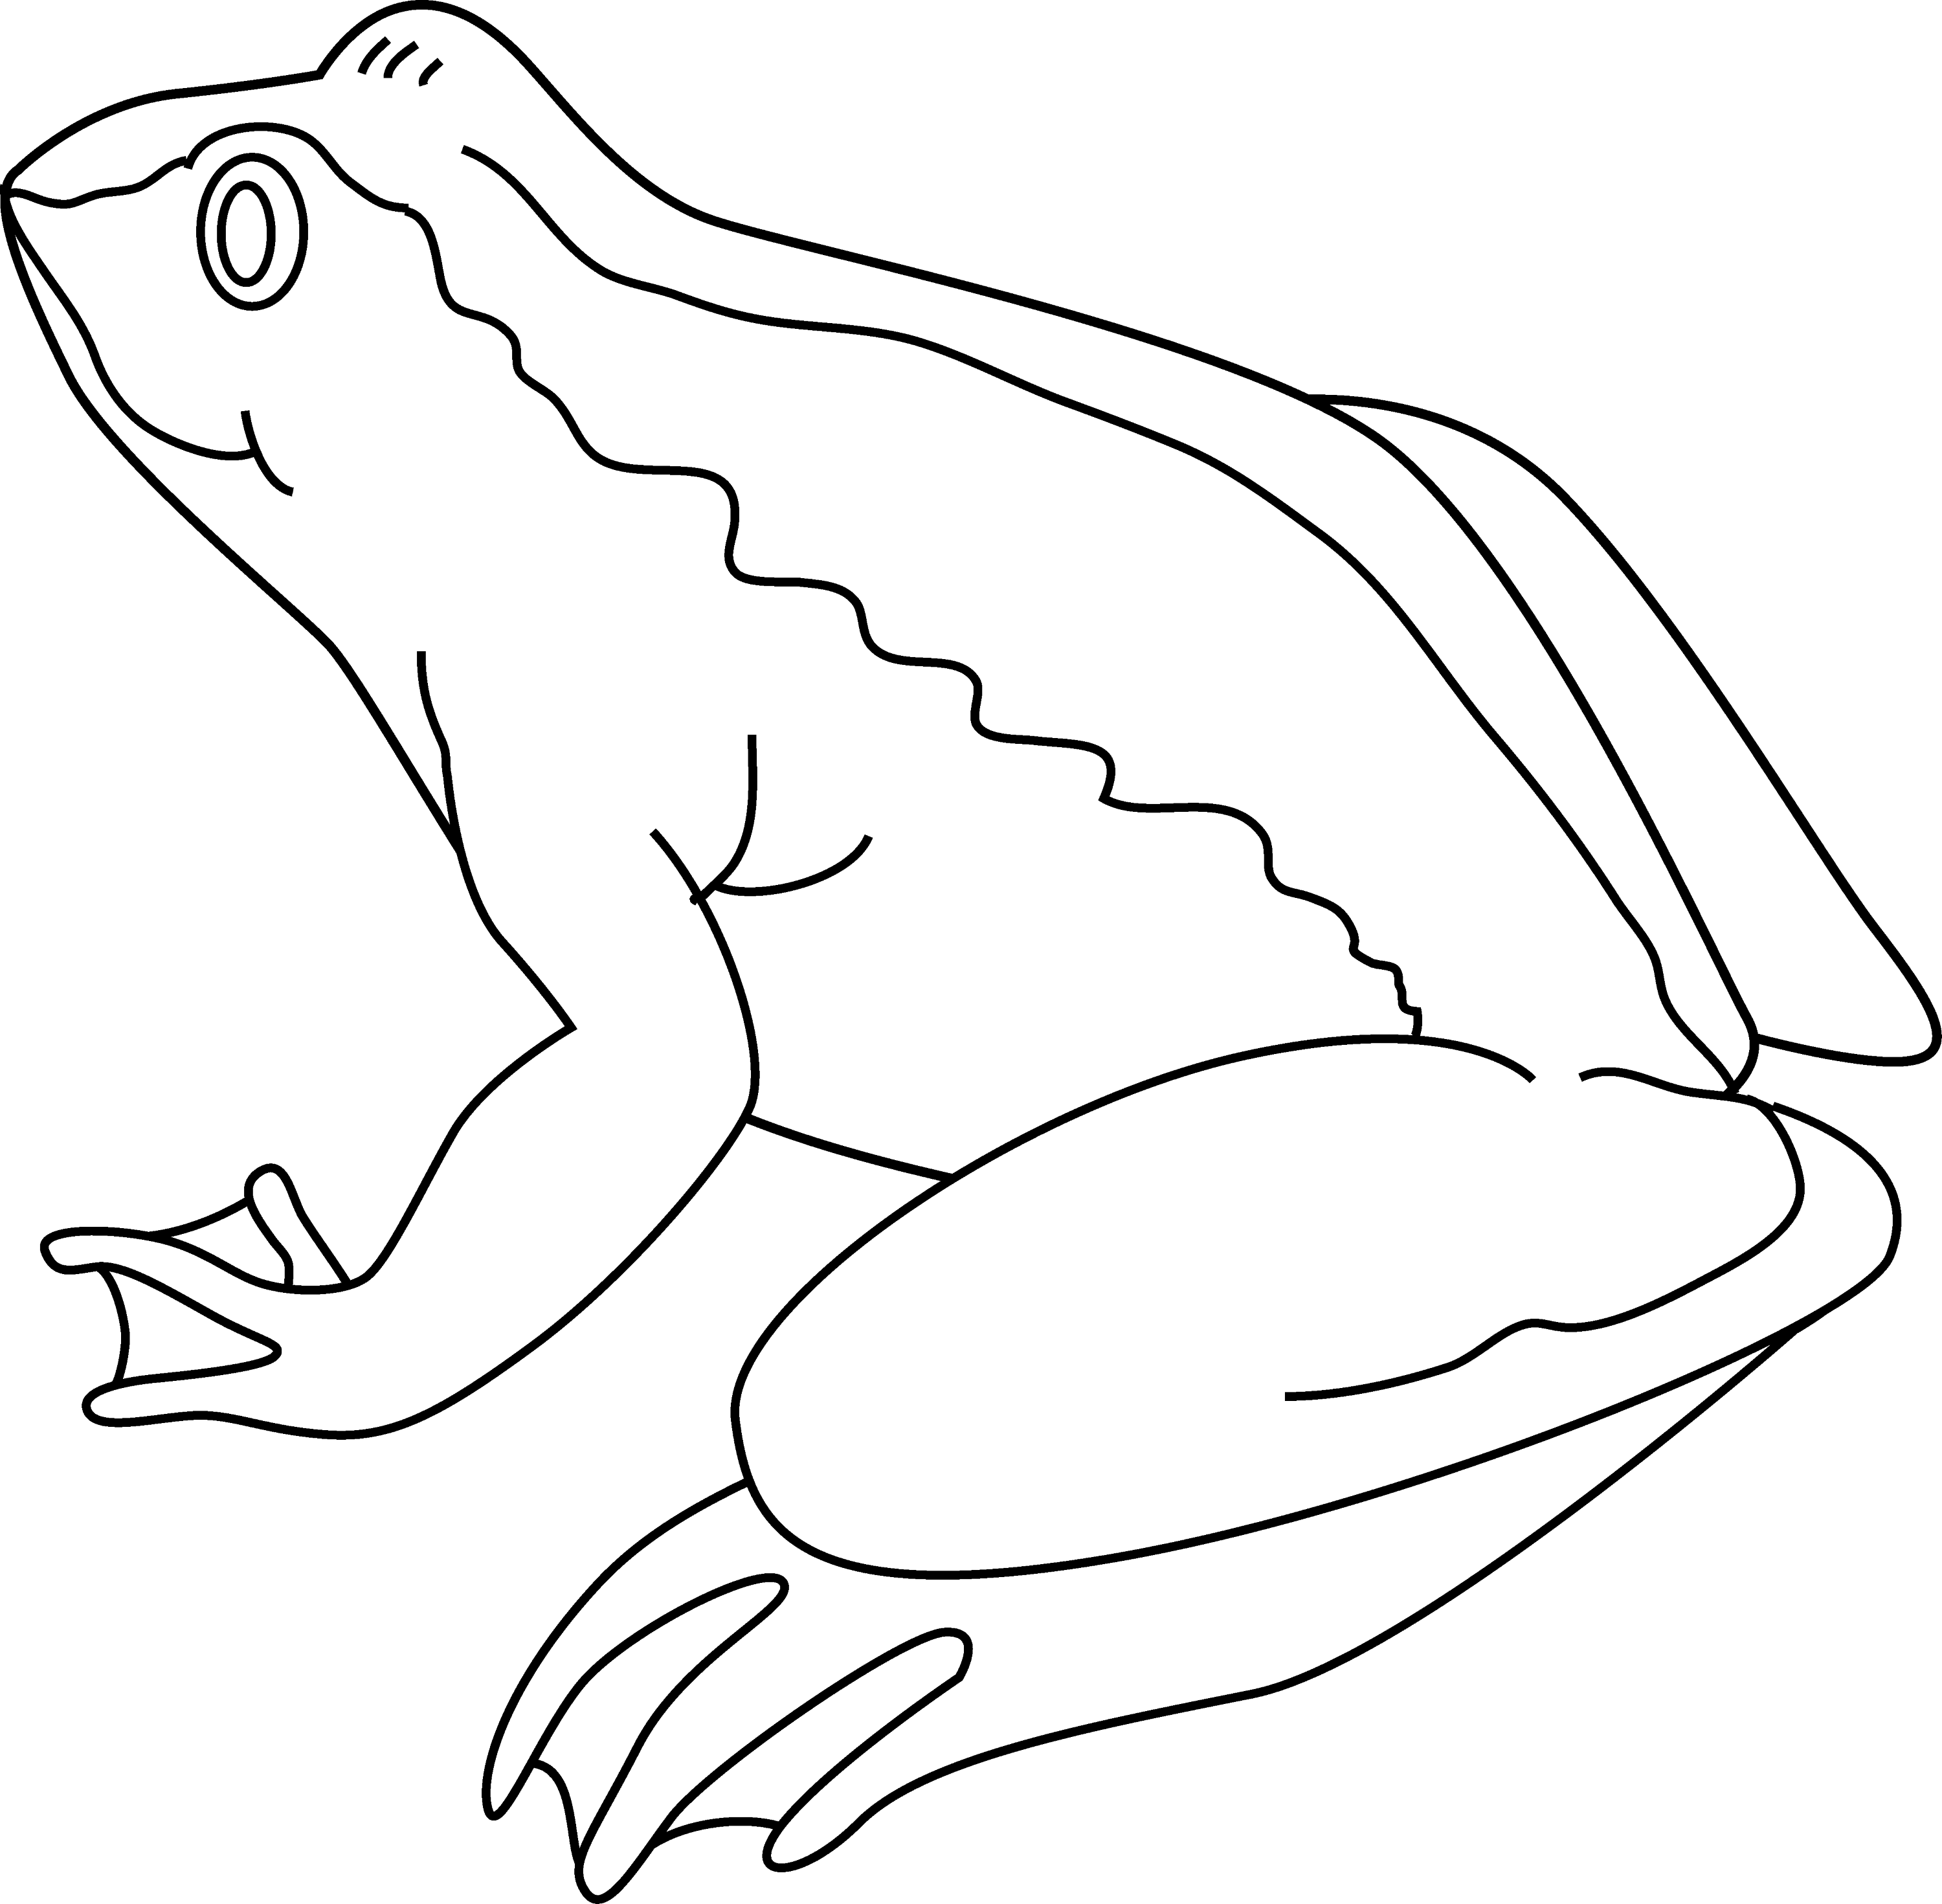 Line Drawing Frog : Frog coloring page free clip art